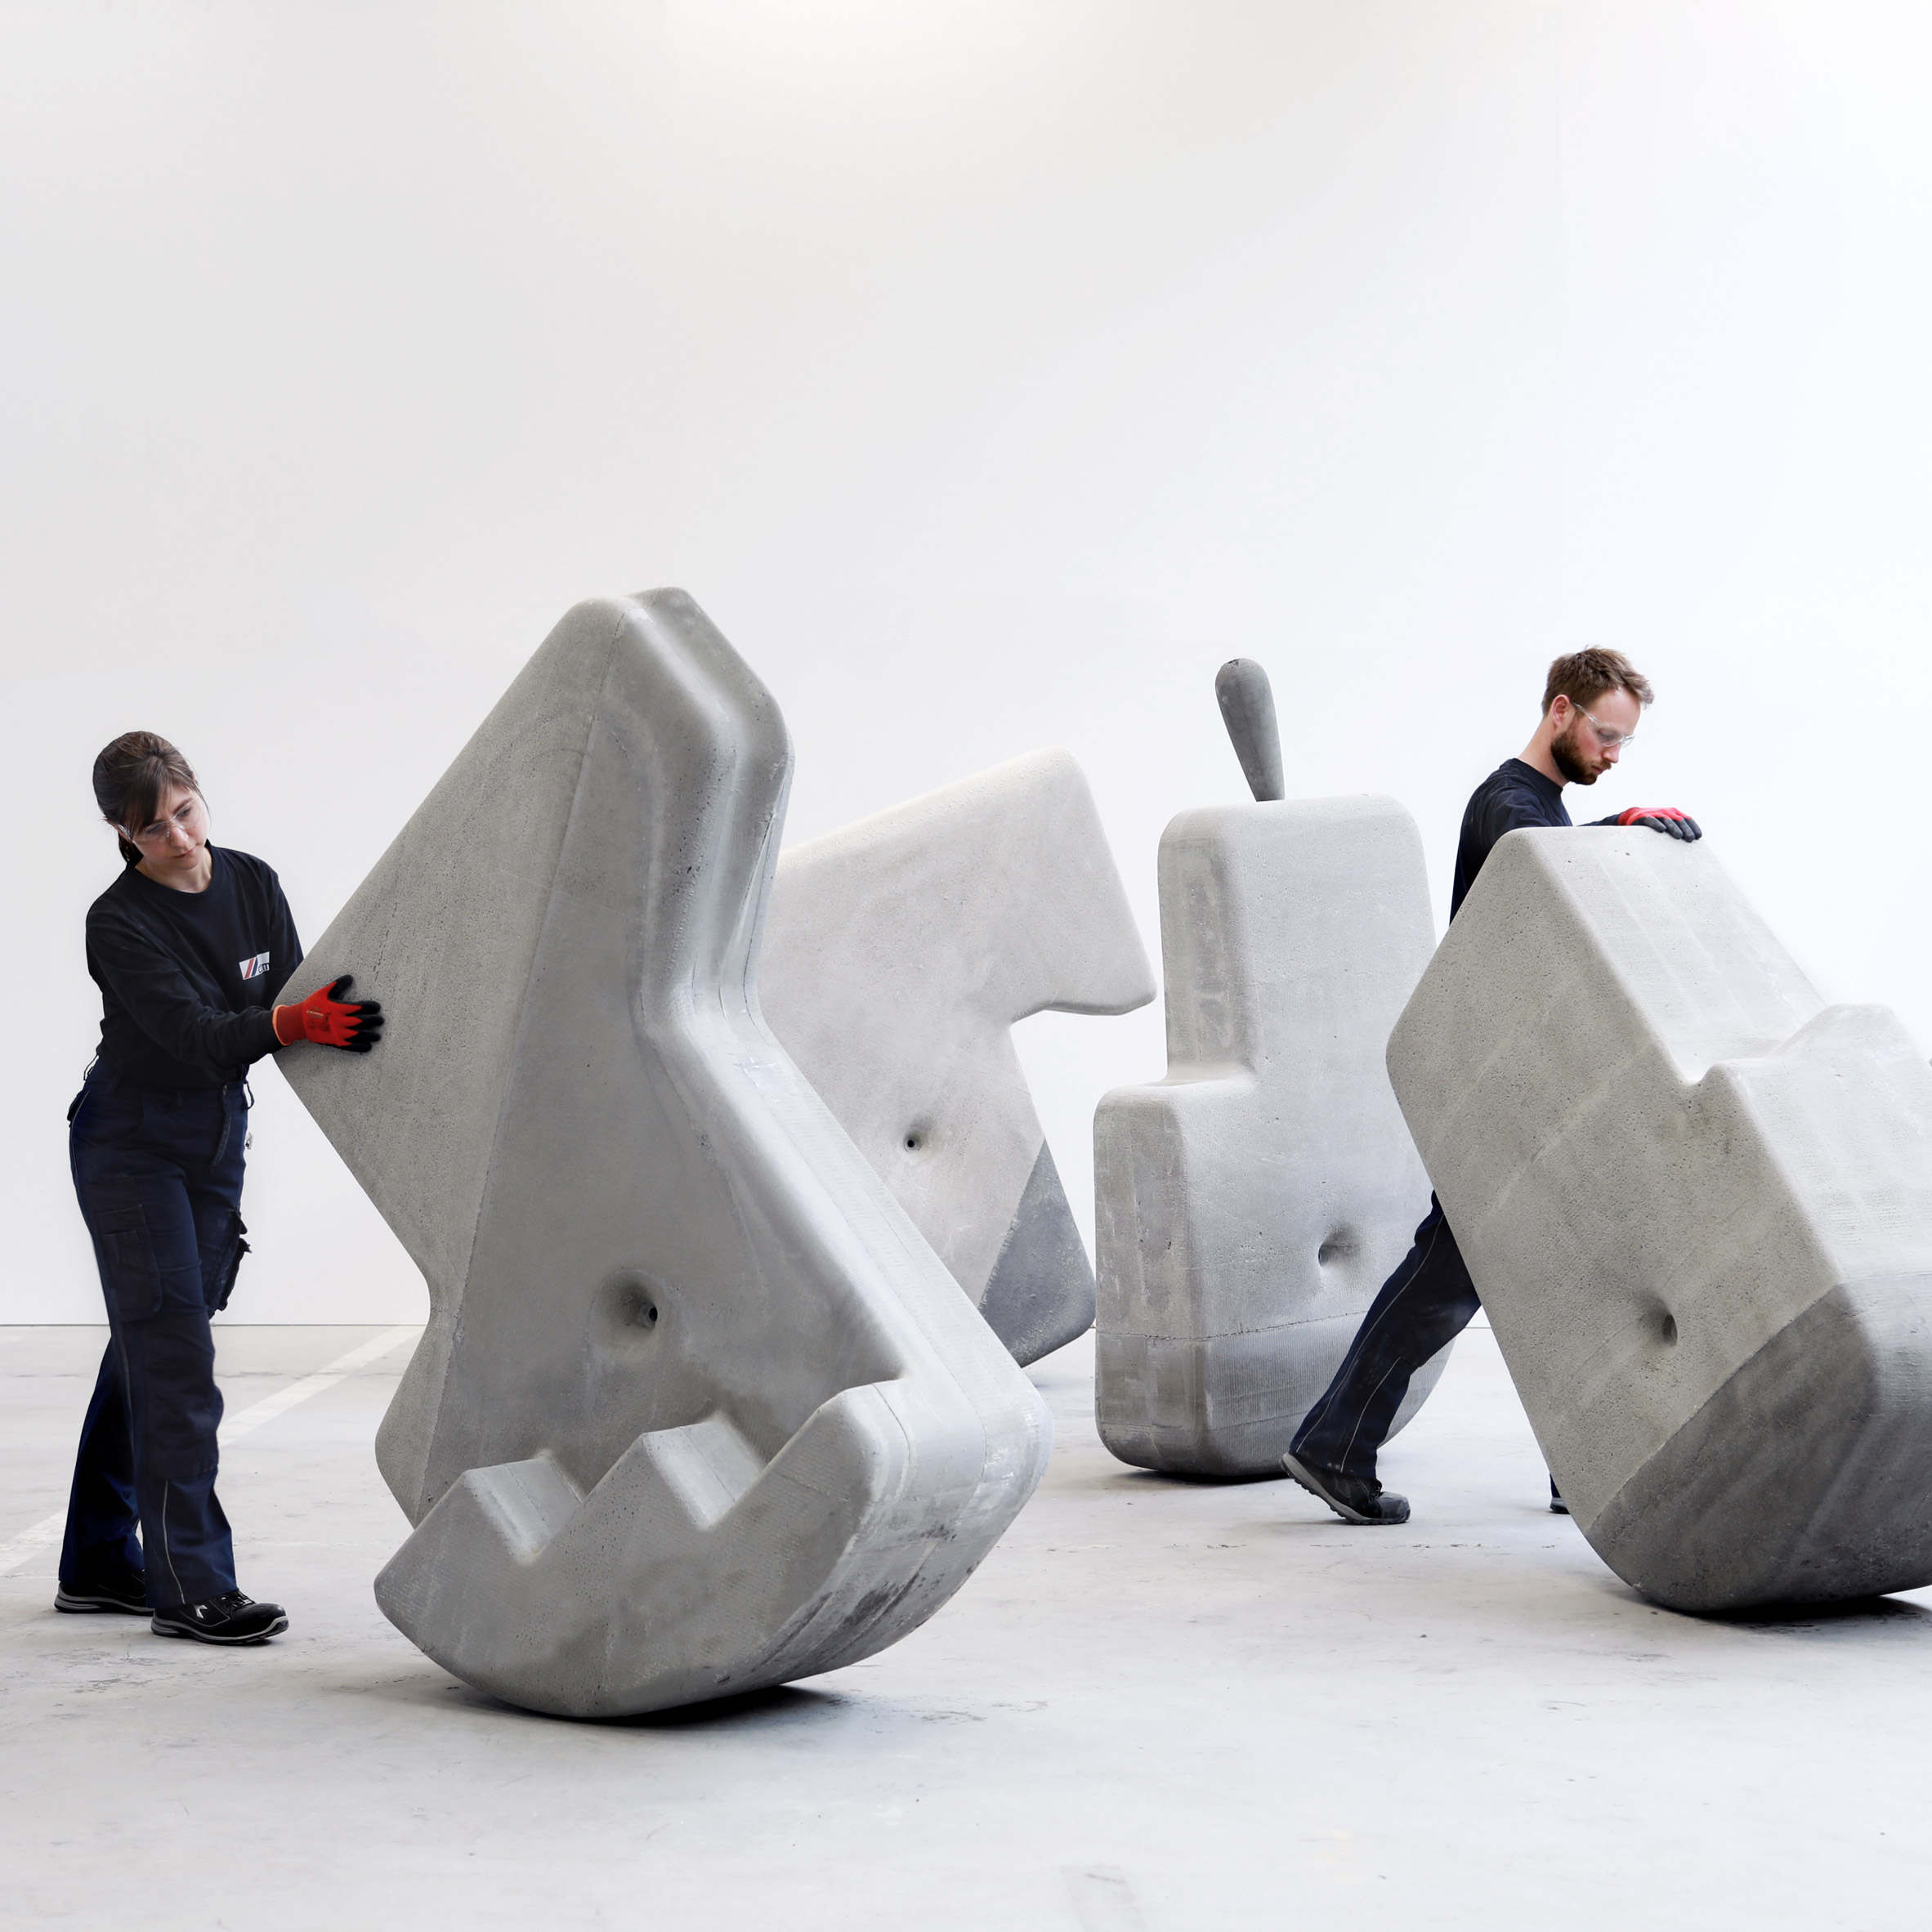 Brandon Clifford S Concrete Sculptures That Sway And Roll Take Cues From Megalithic Architecture